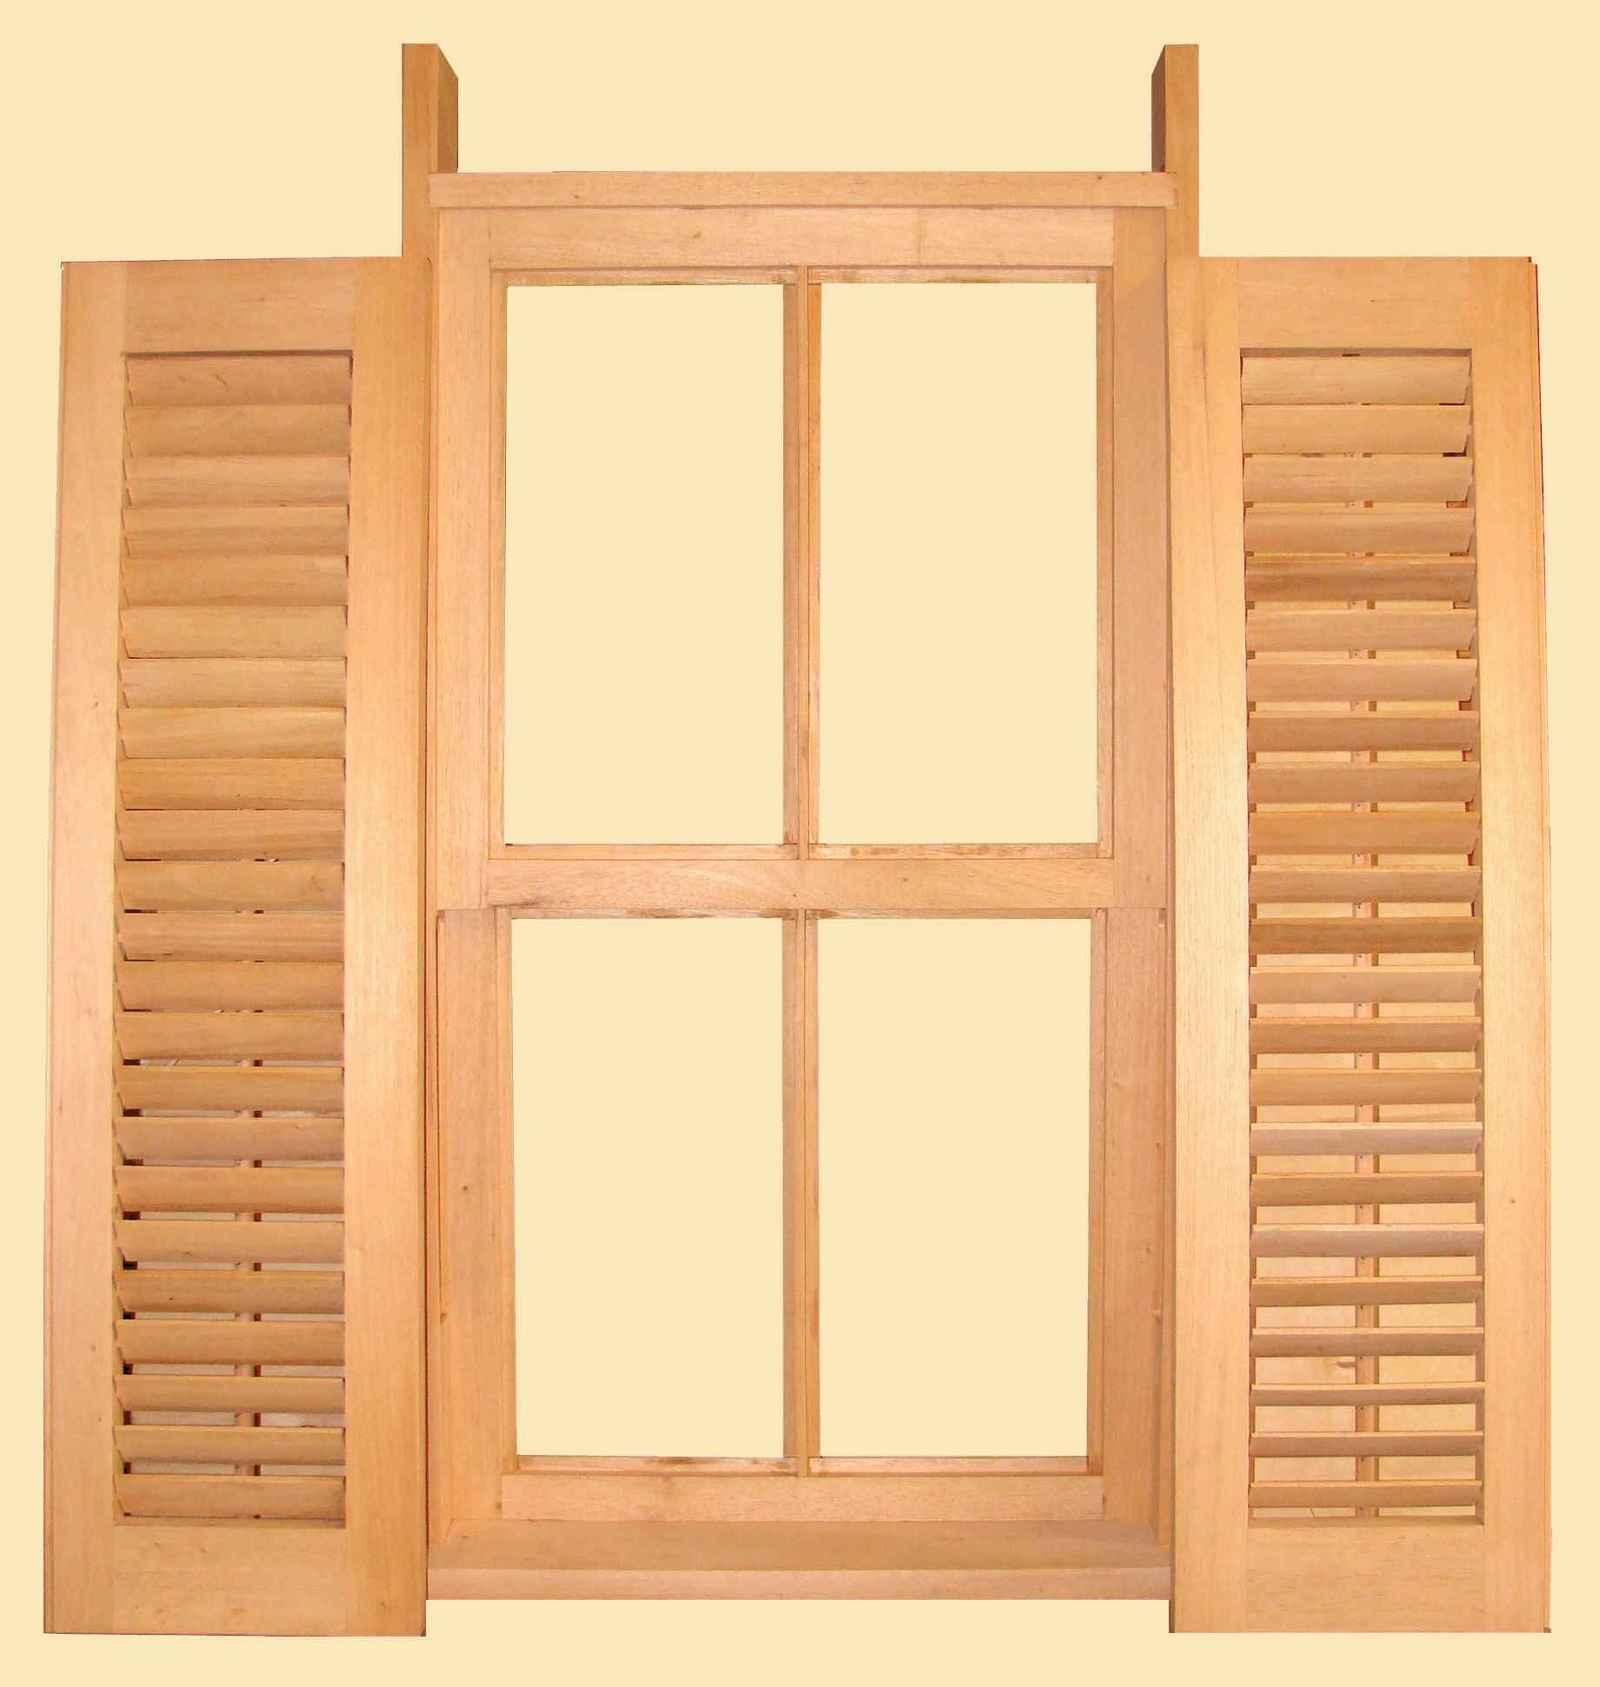 Wood Window Frames : Wooden window frames ideas